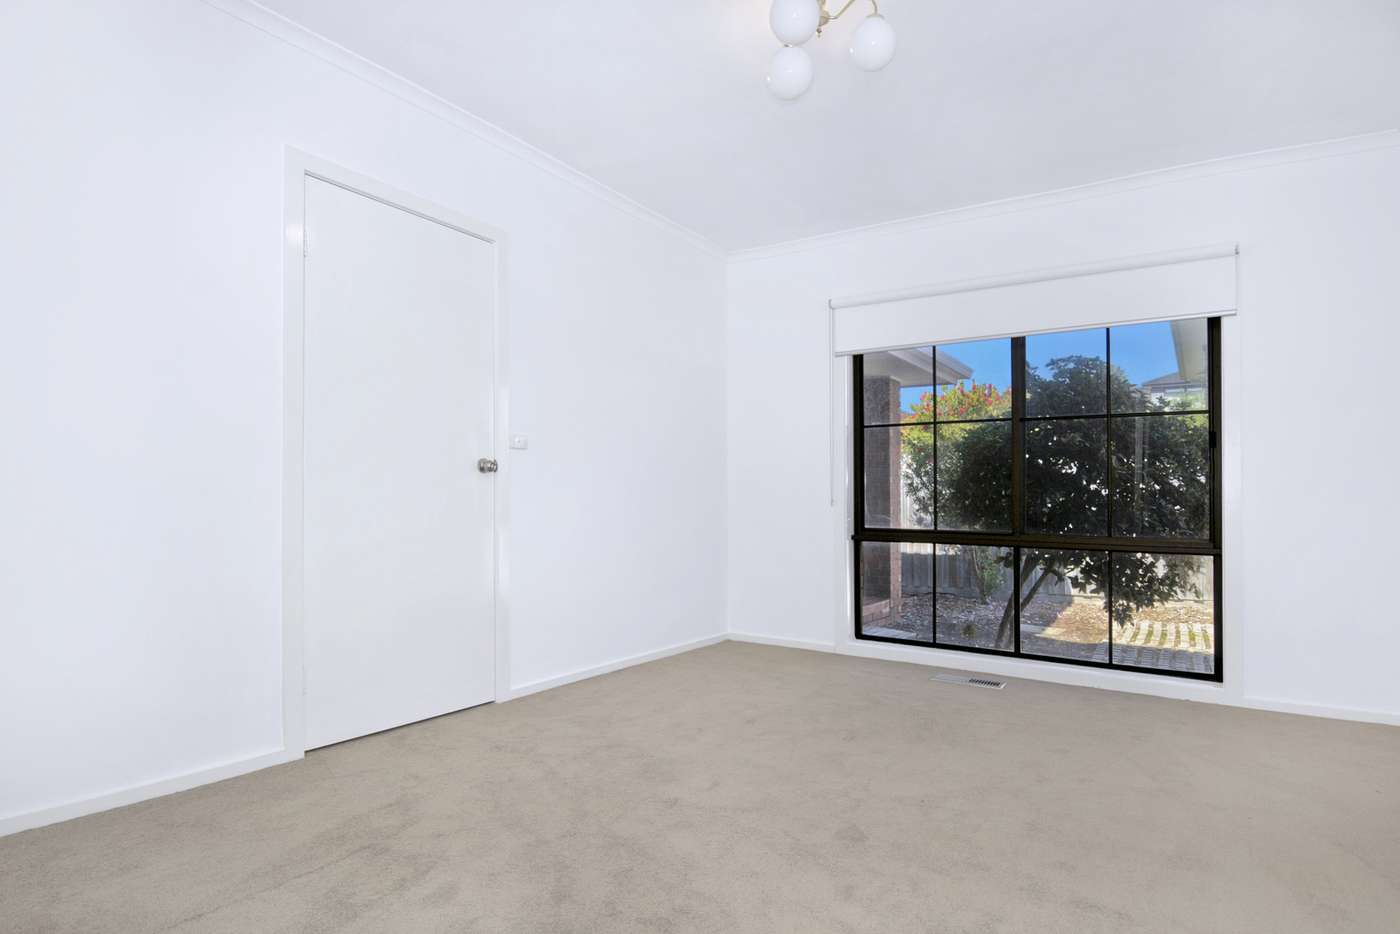 Fifth view of Homely villa listing, 2/22 Carrathool Street, Bulleen VIC 3105